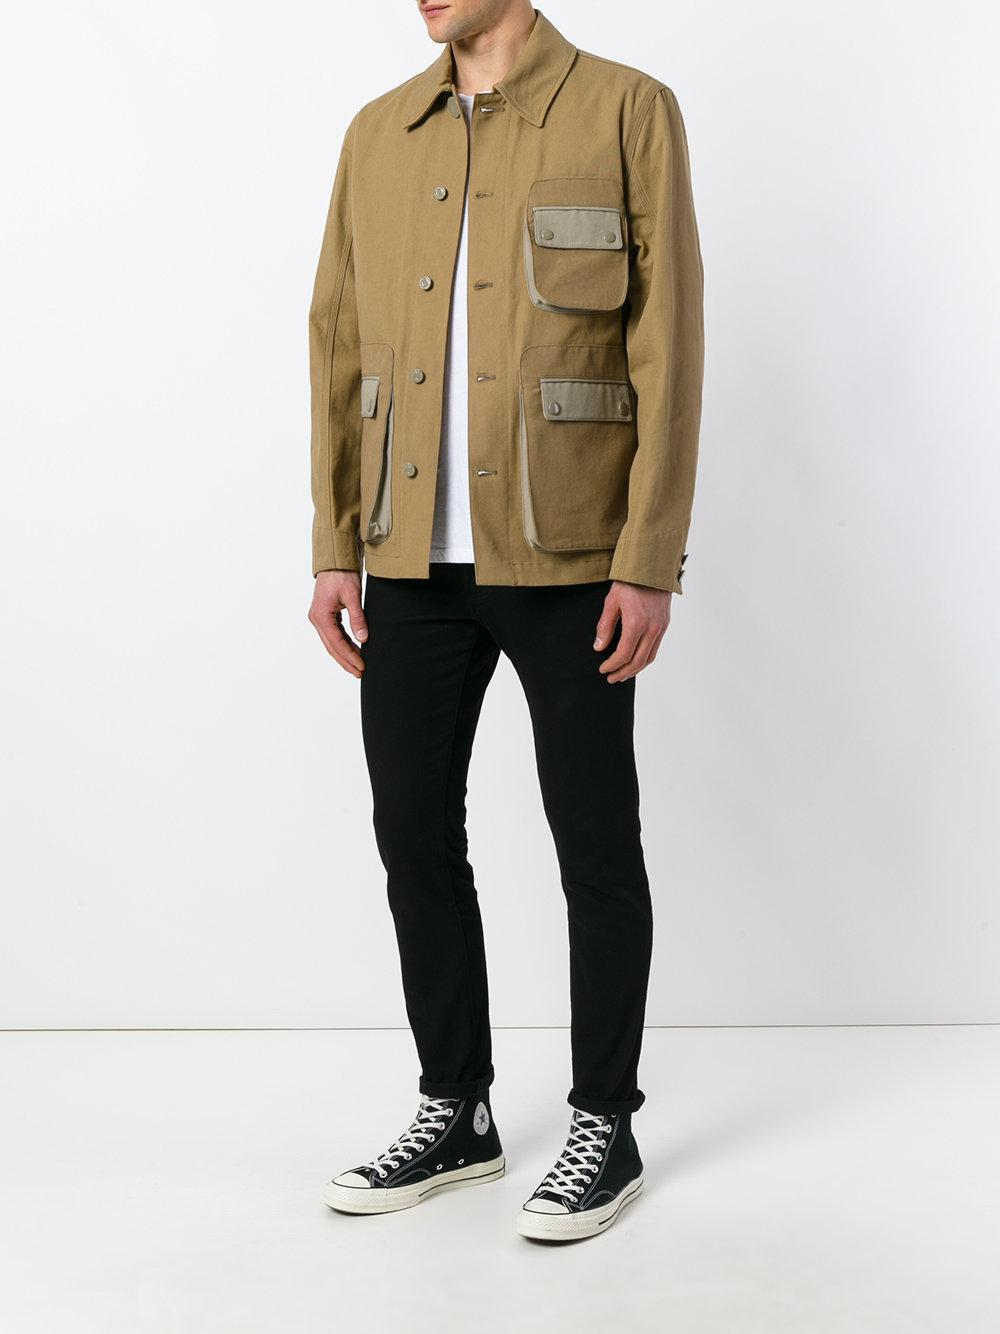 Givenchy Cotton Field Jacket in Natural for Men